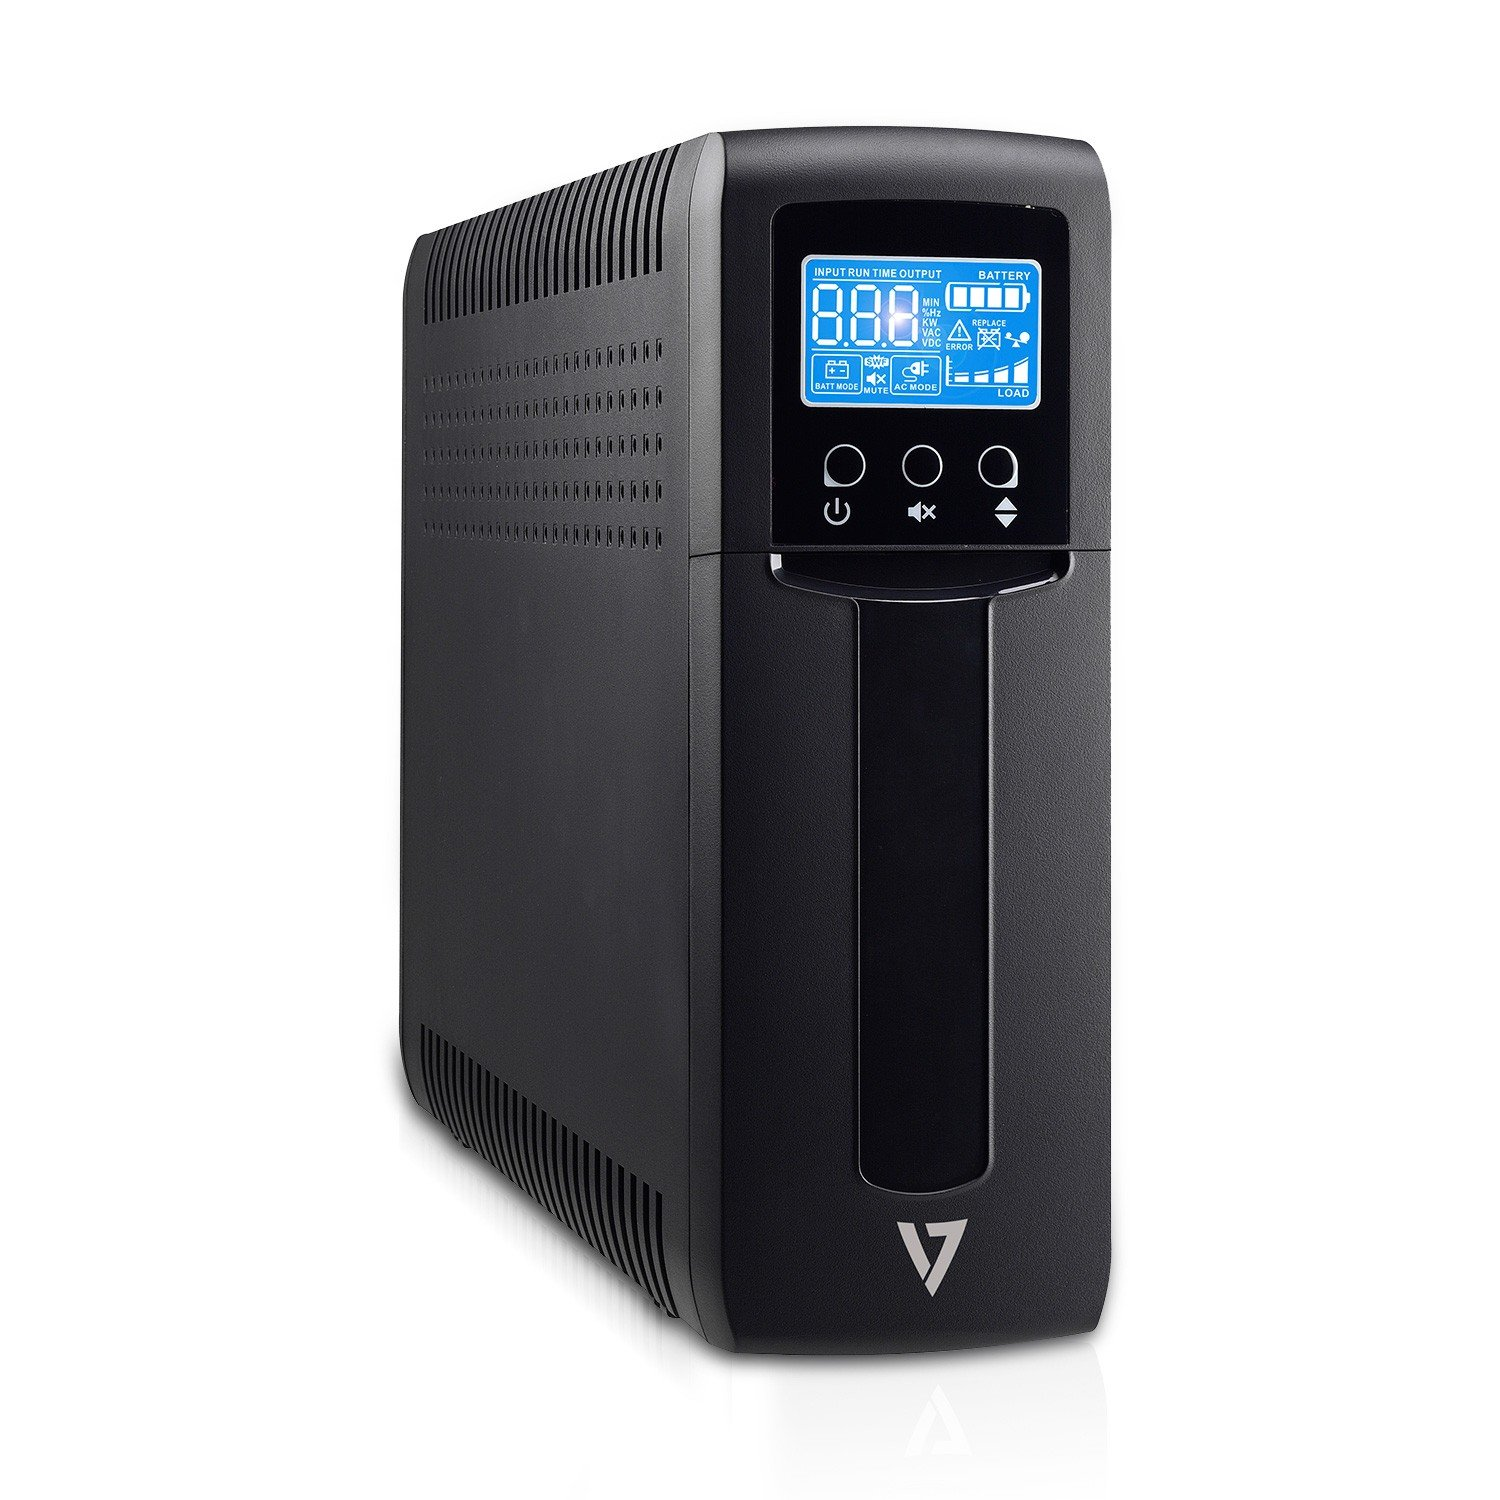 V7 Uninterruptible Power Supplies 1500VA UPS Tower LCD 5UPS (UPS1TW1500-1N)